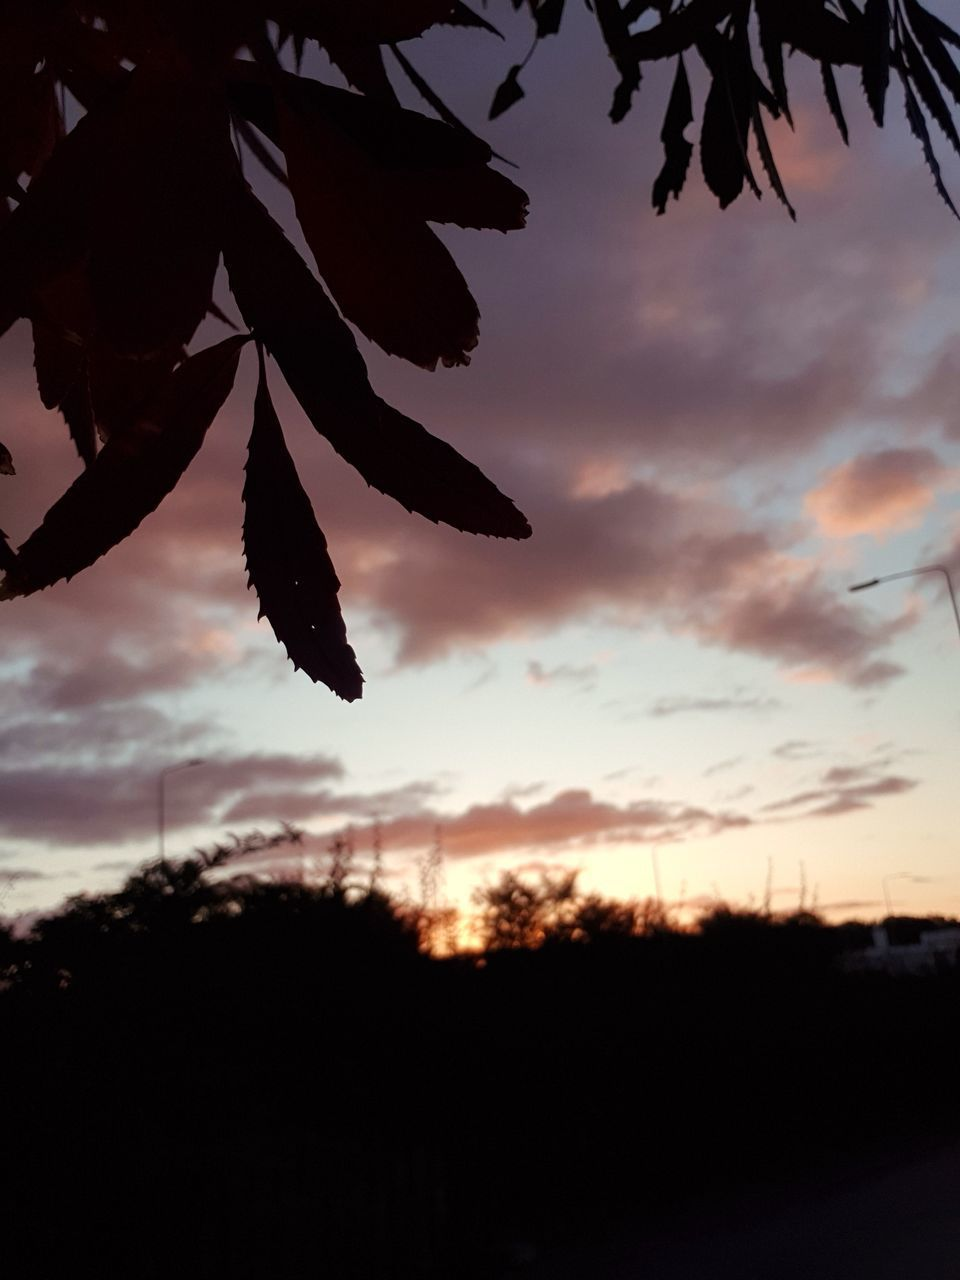 CLOSE-UP OF SILHOUETTE MAPLE LEAVES AGAINST SKY DURING SUNSET